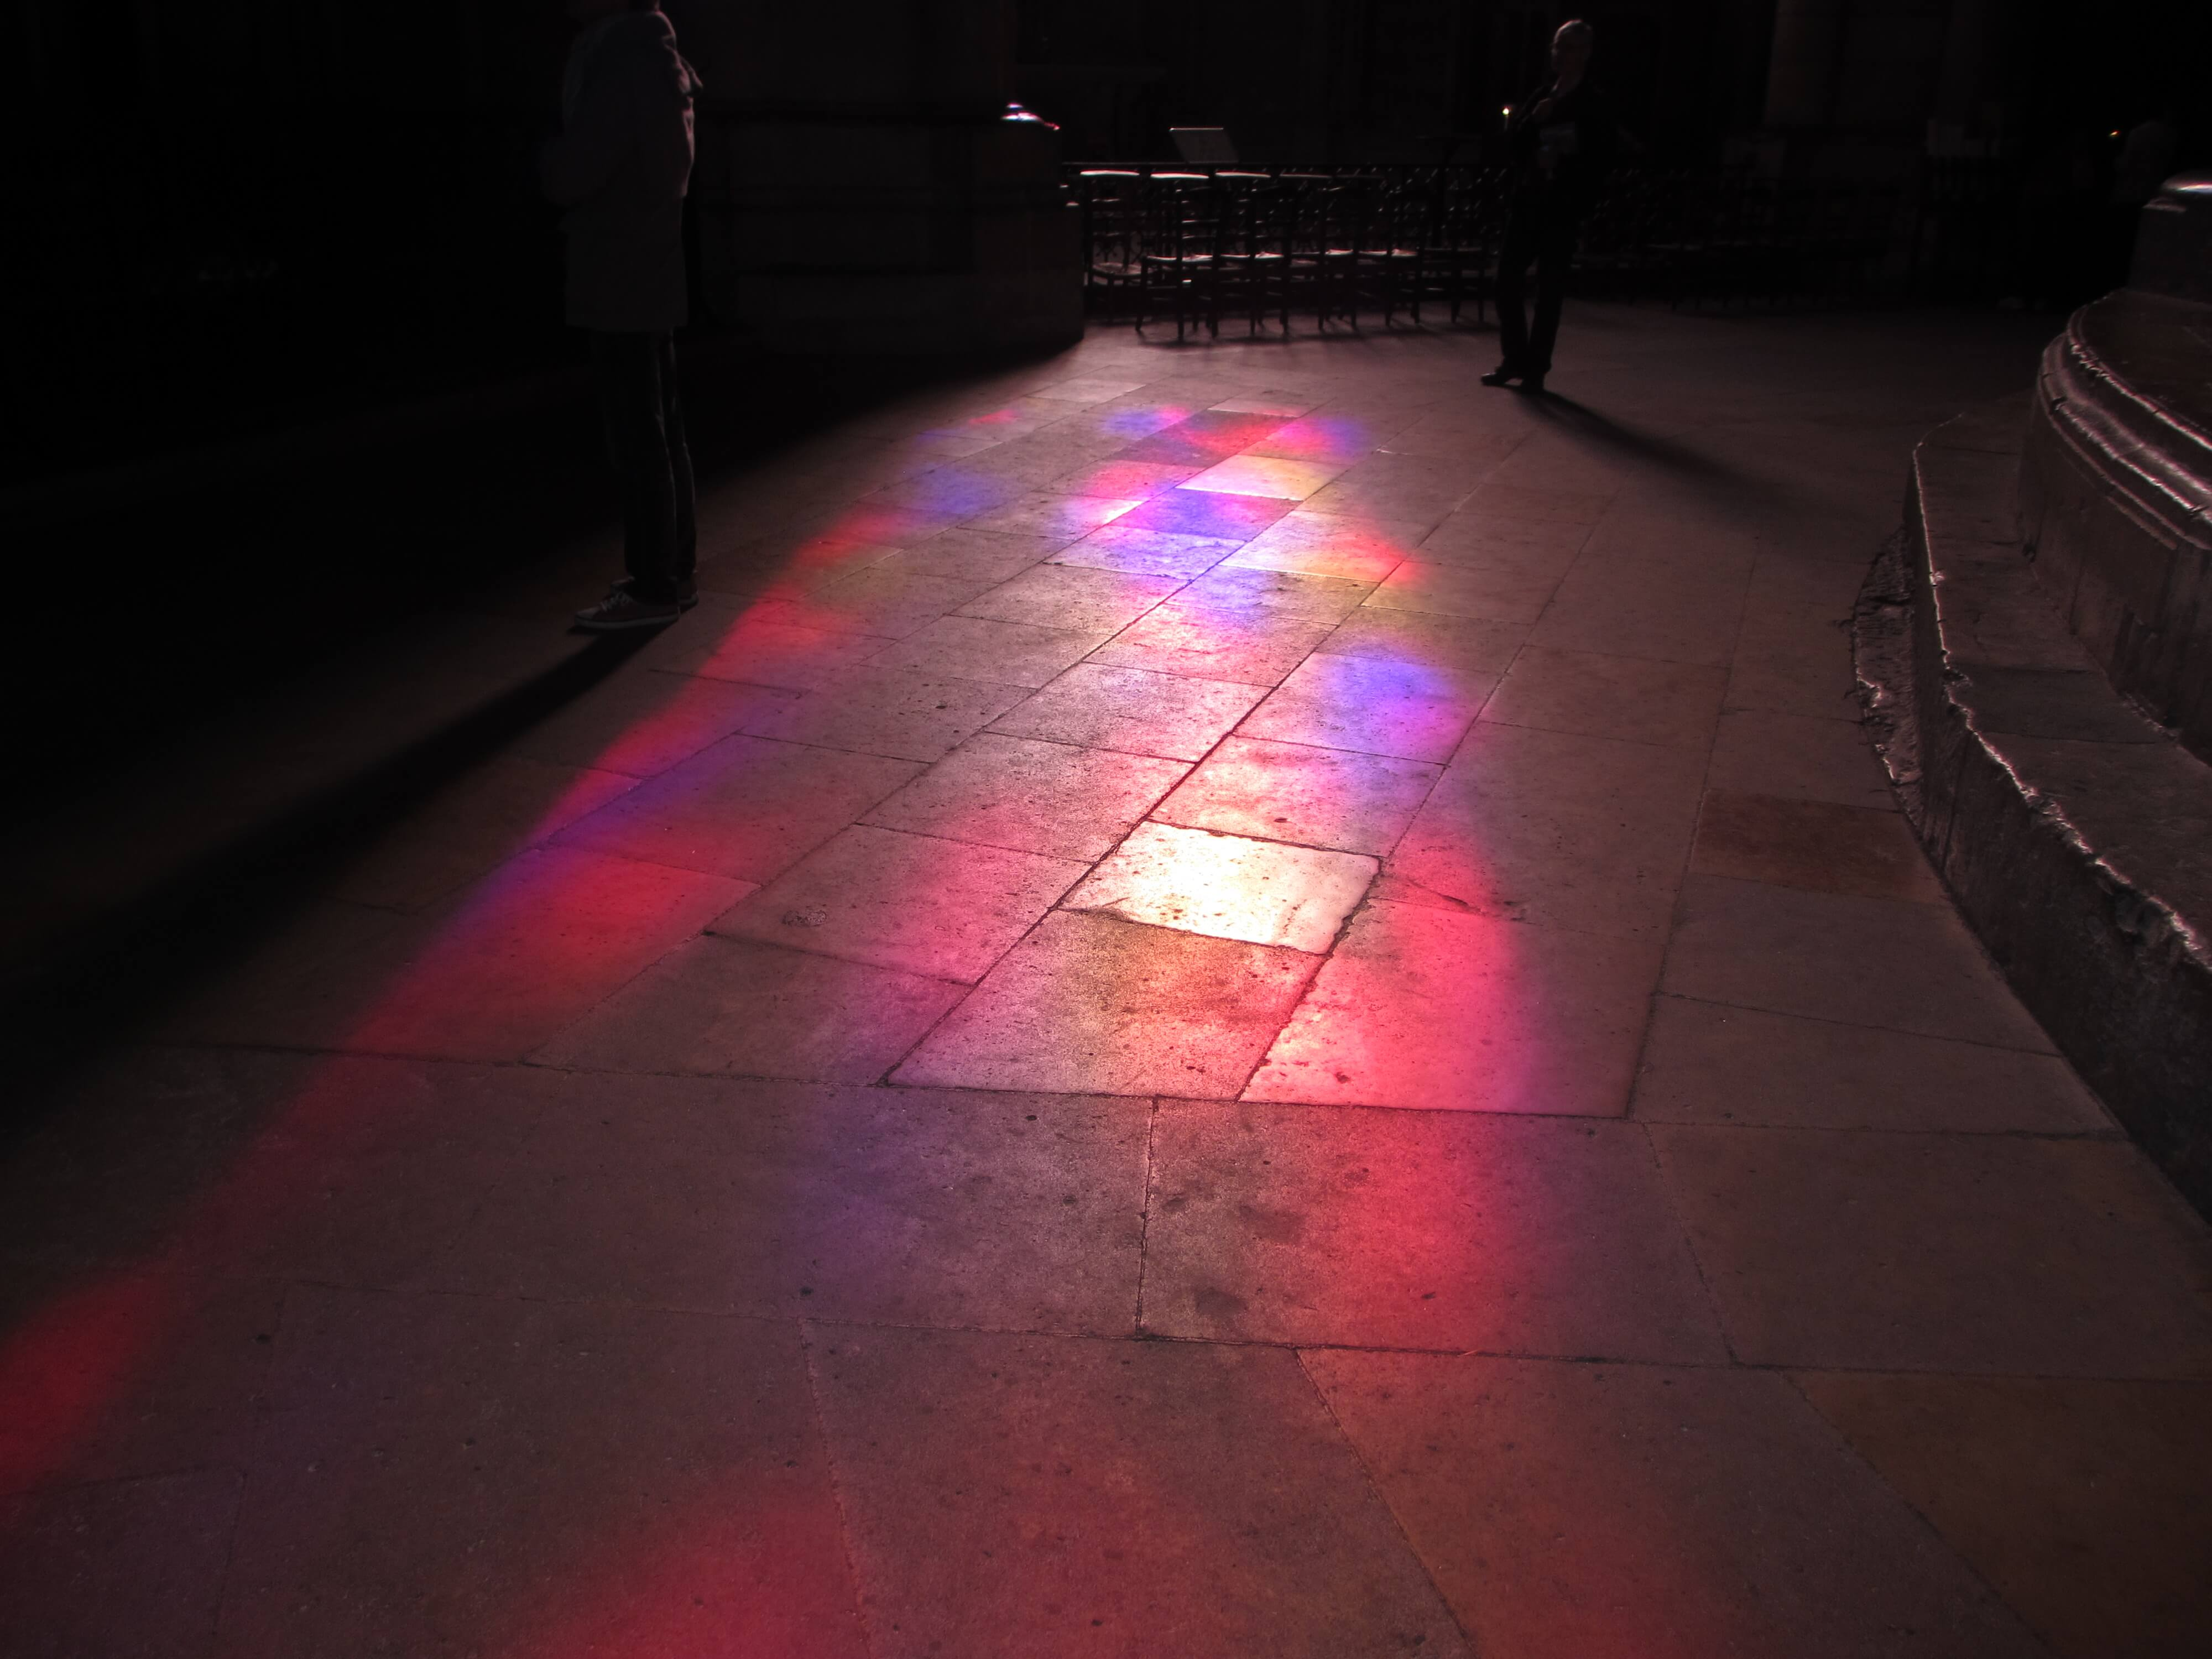 Light from the Imi Knoebel window reflecting on the floor